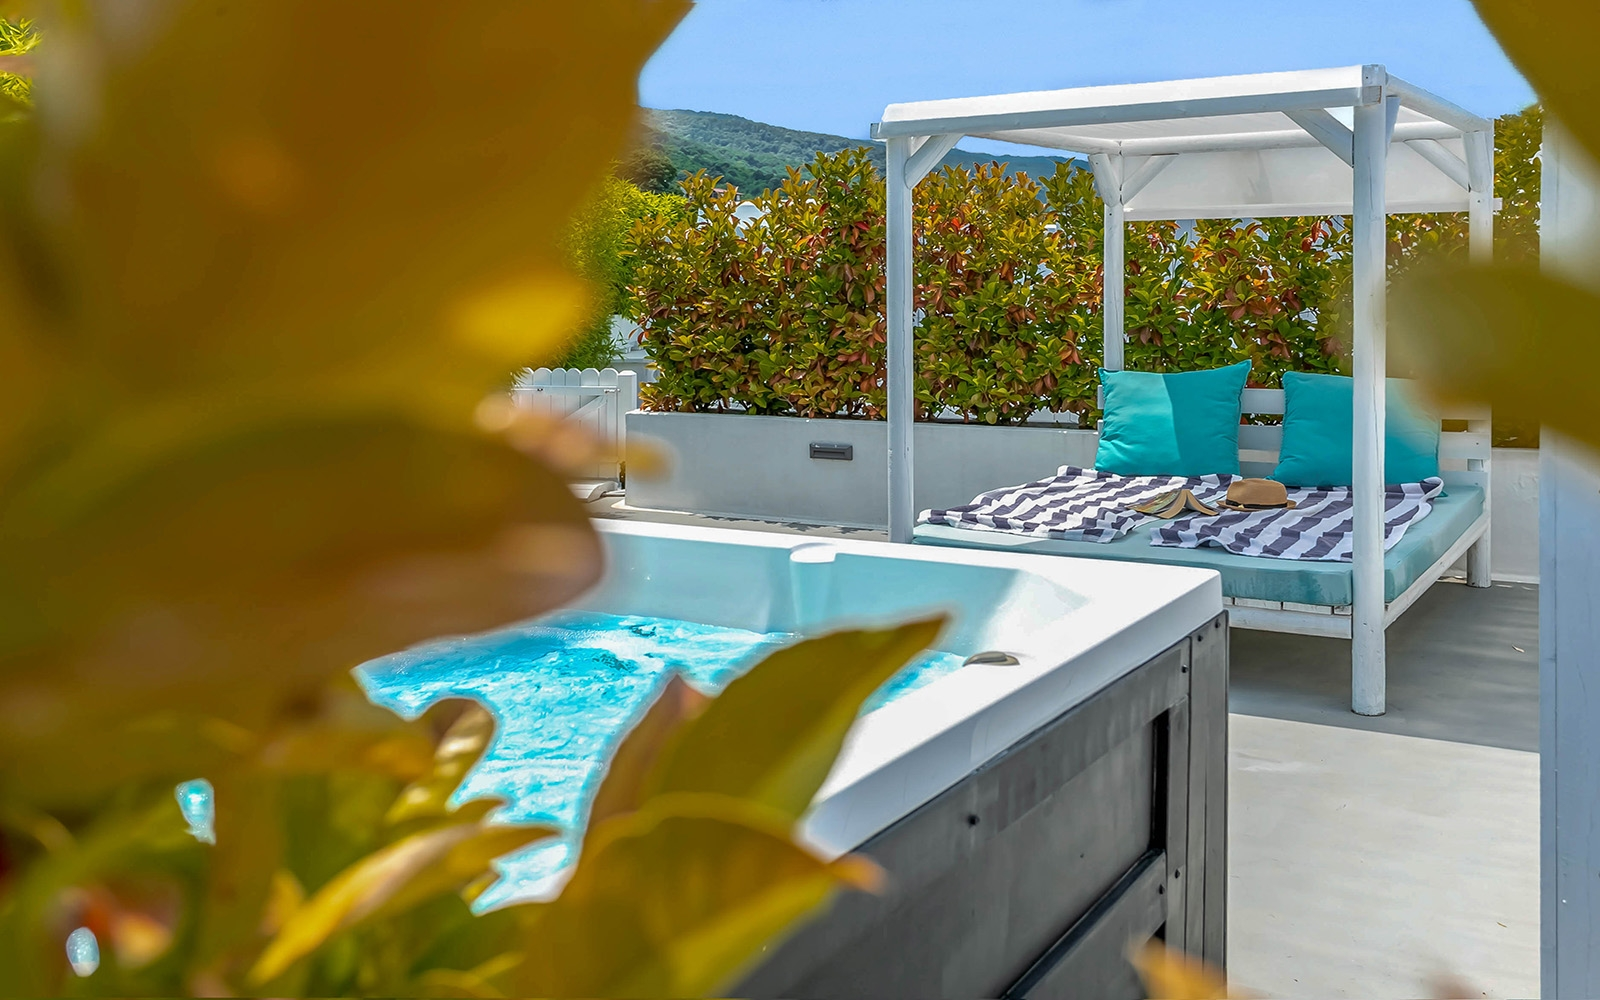 AROMA SUITE - Panoramic Sea View - Hot Tub - Rooftop Garden - Heated Mini Pool